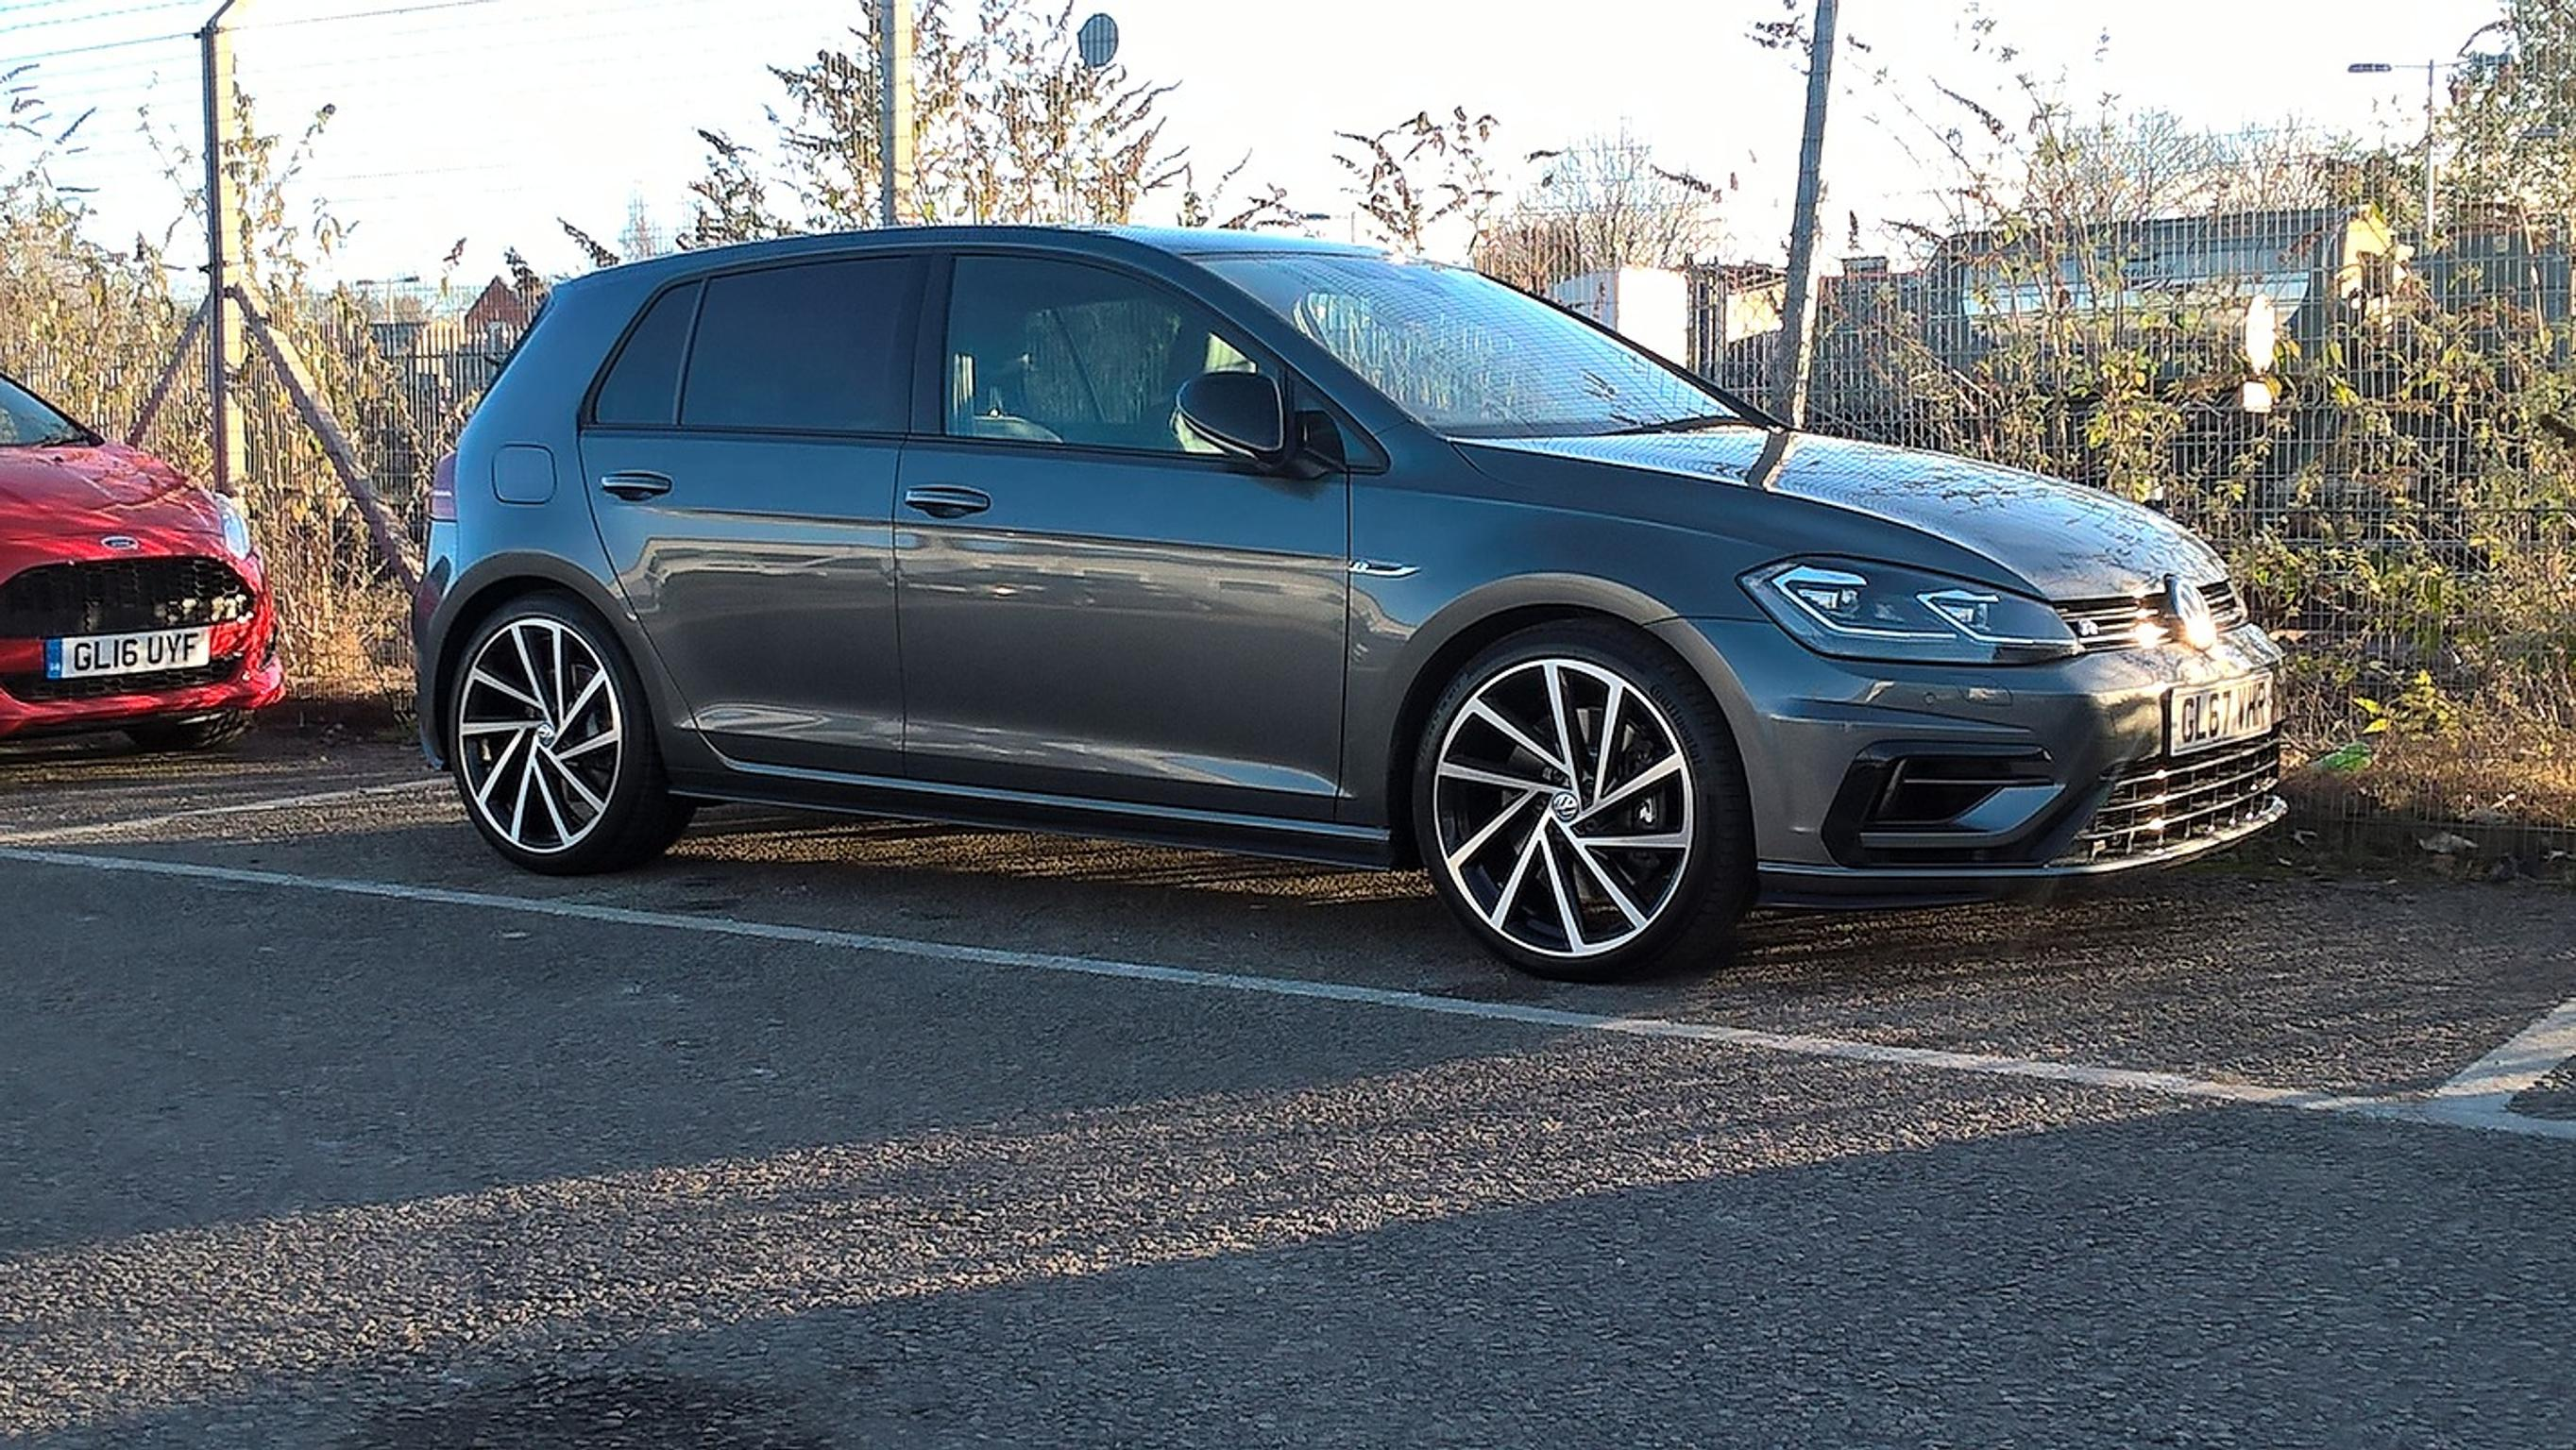 Vw Spielberg Style Alloy Wheels Golf Audi A3 In Bt71 Dungannon For 405 00 For Sale Shpock